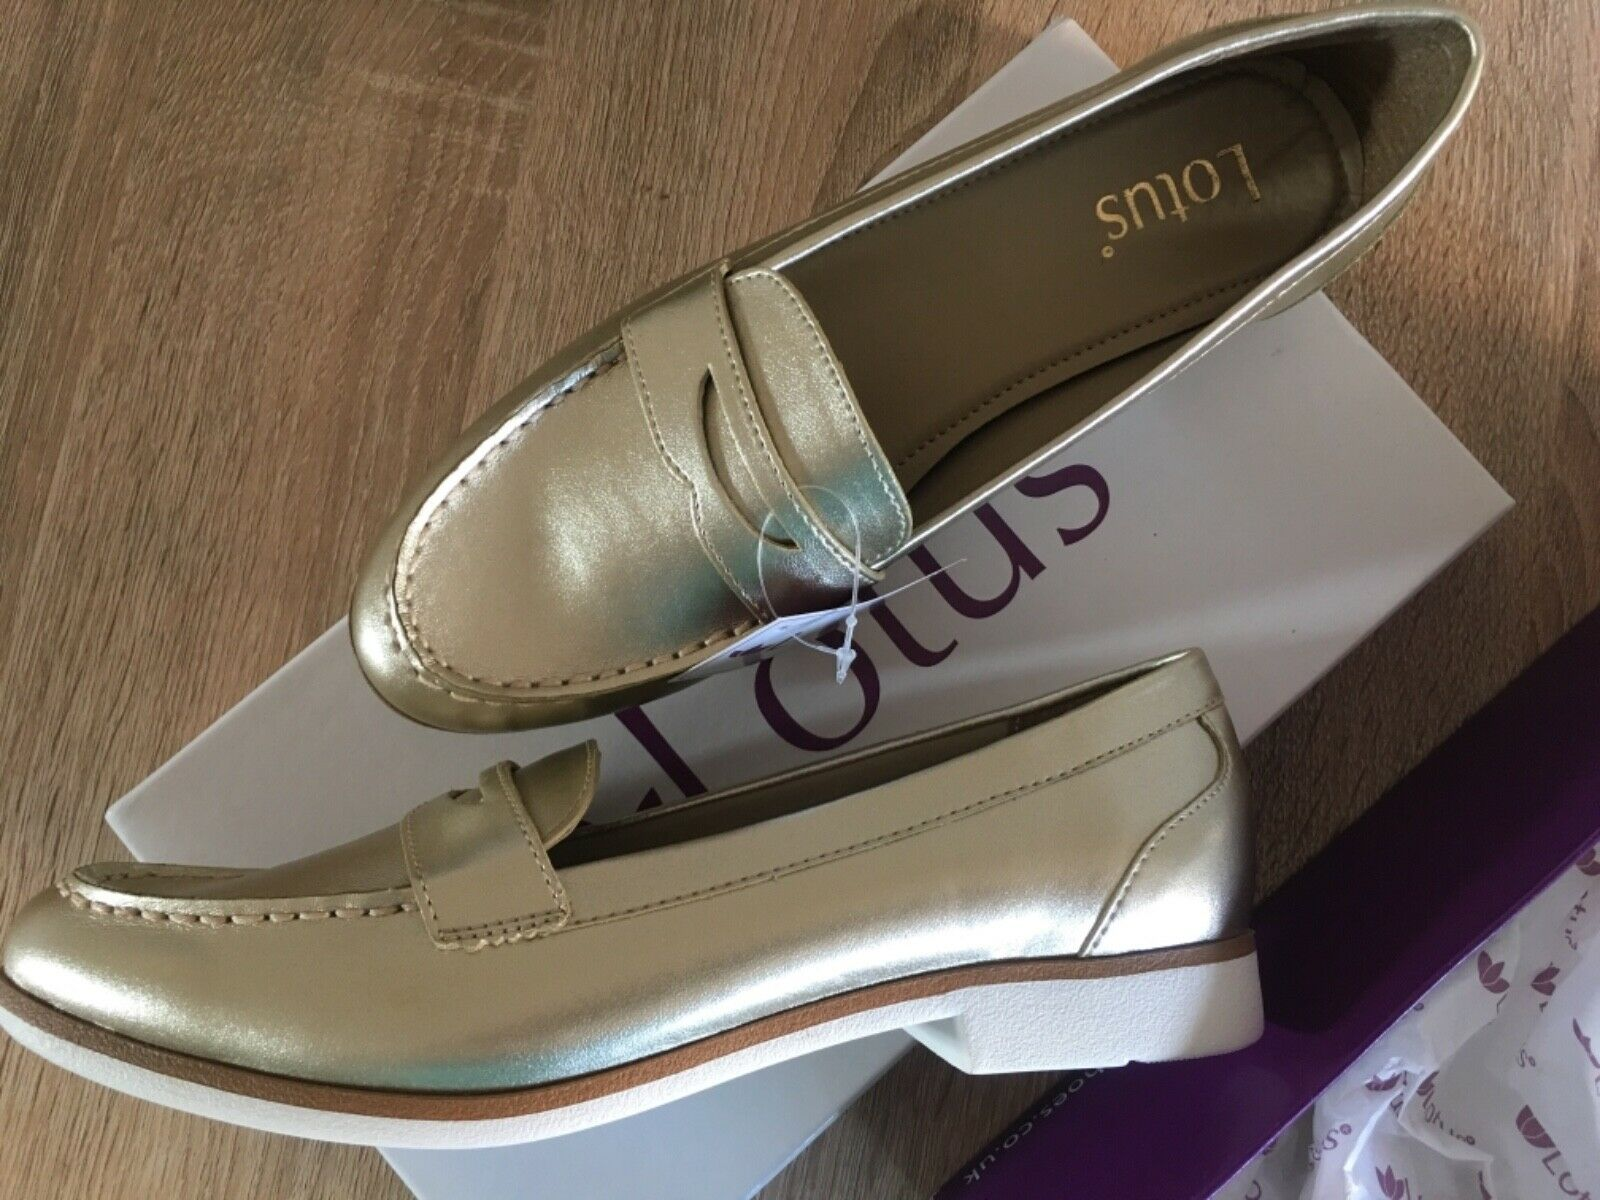 New in box Lotus gold ladies shoe size 5